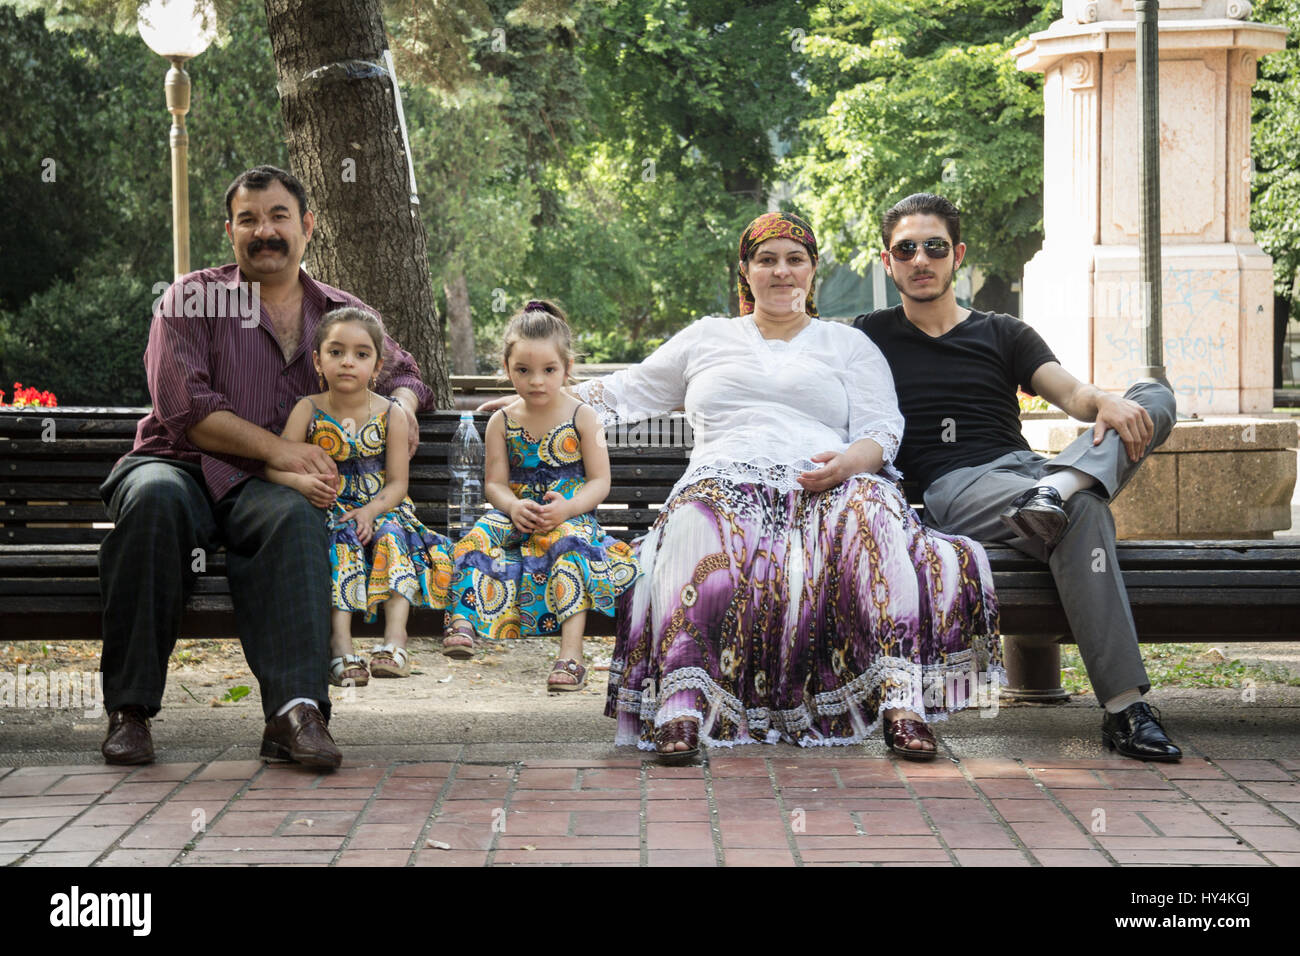 PANCEVO, SERBIA - JUNE 13, 2015: Portrait of a Roma family wearing traditional costumes  Picture of a Roma family - Stock Image